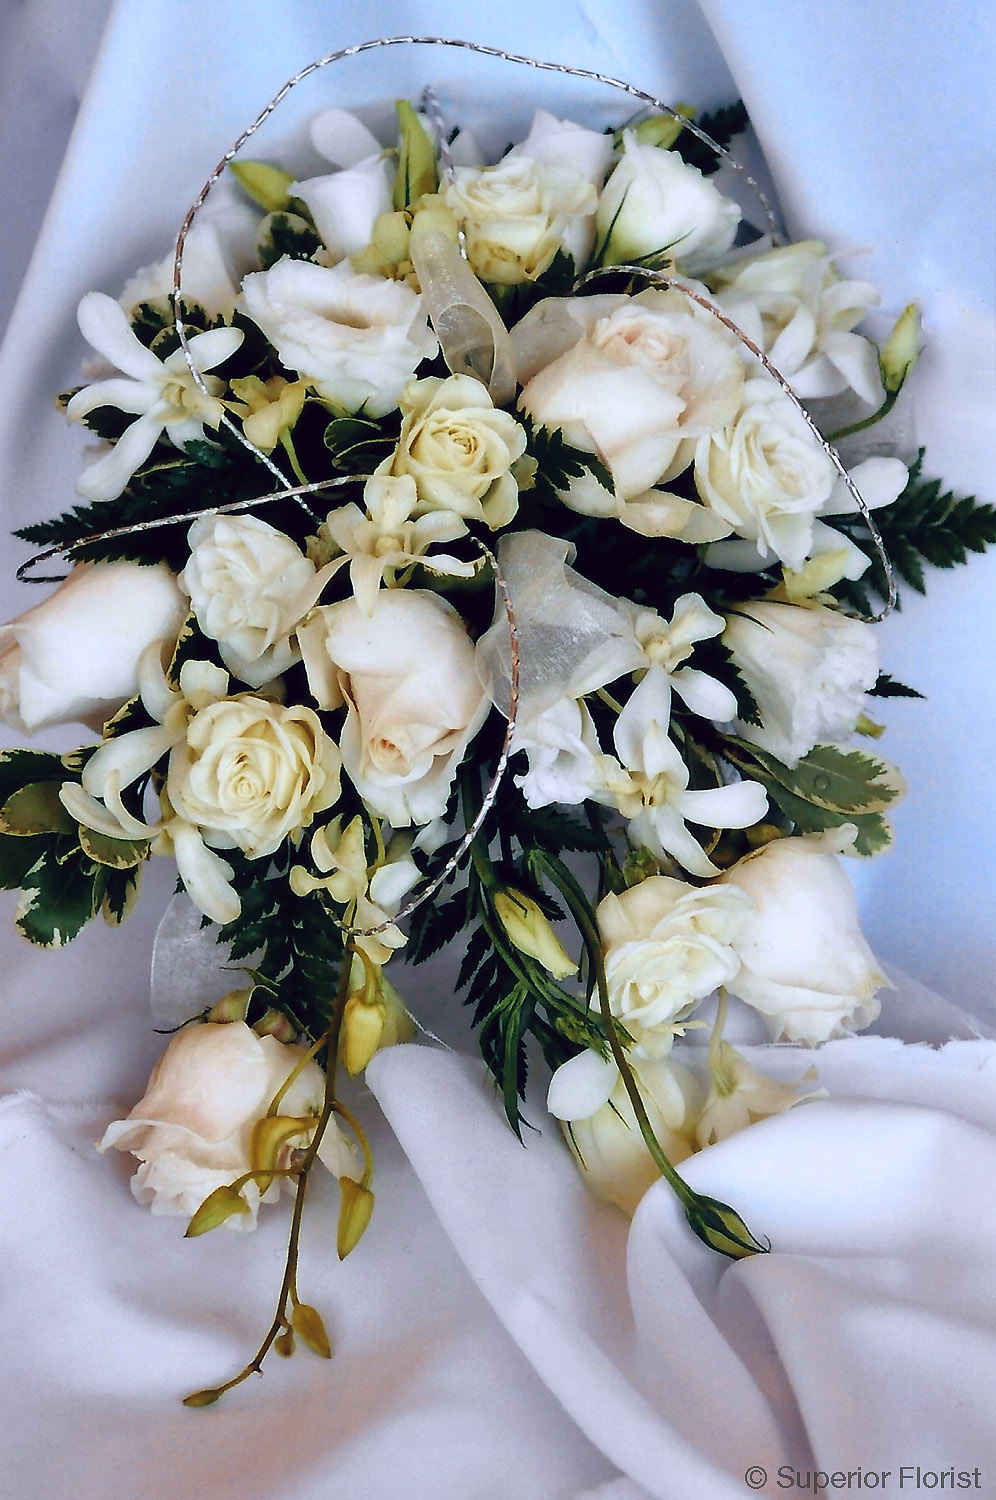 Superior Florist – Weddings – Personal Flowers: Teardrop bouquet of Lisianthus roses, Dendrobium and accents of metallic wisps.